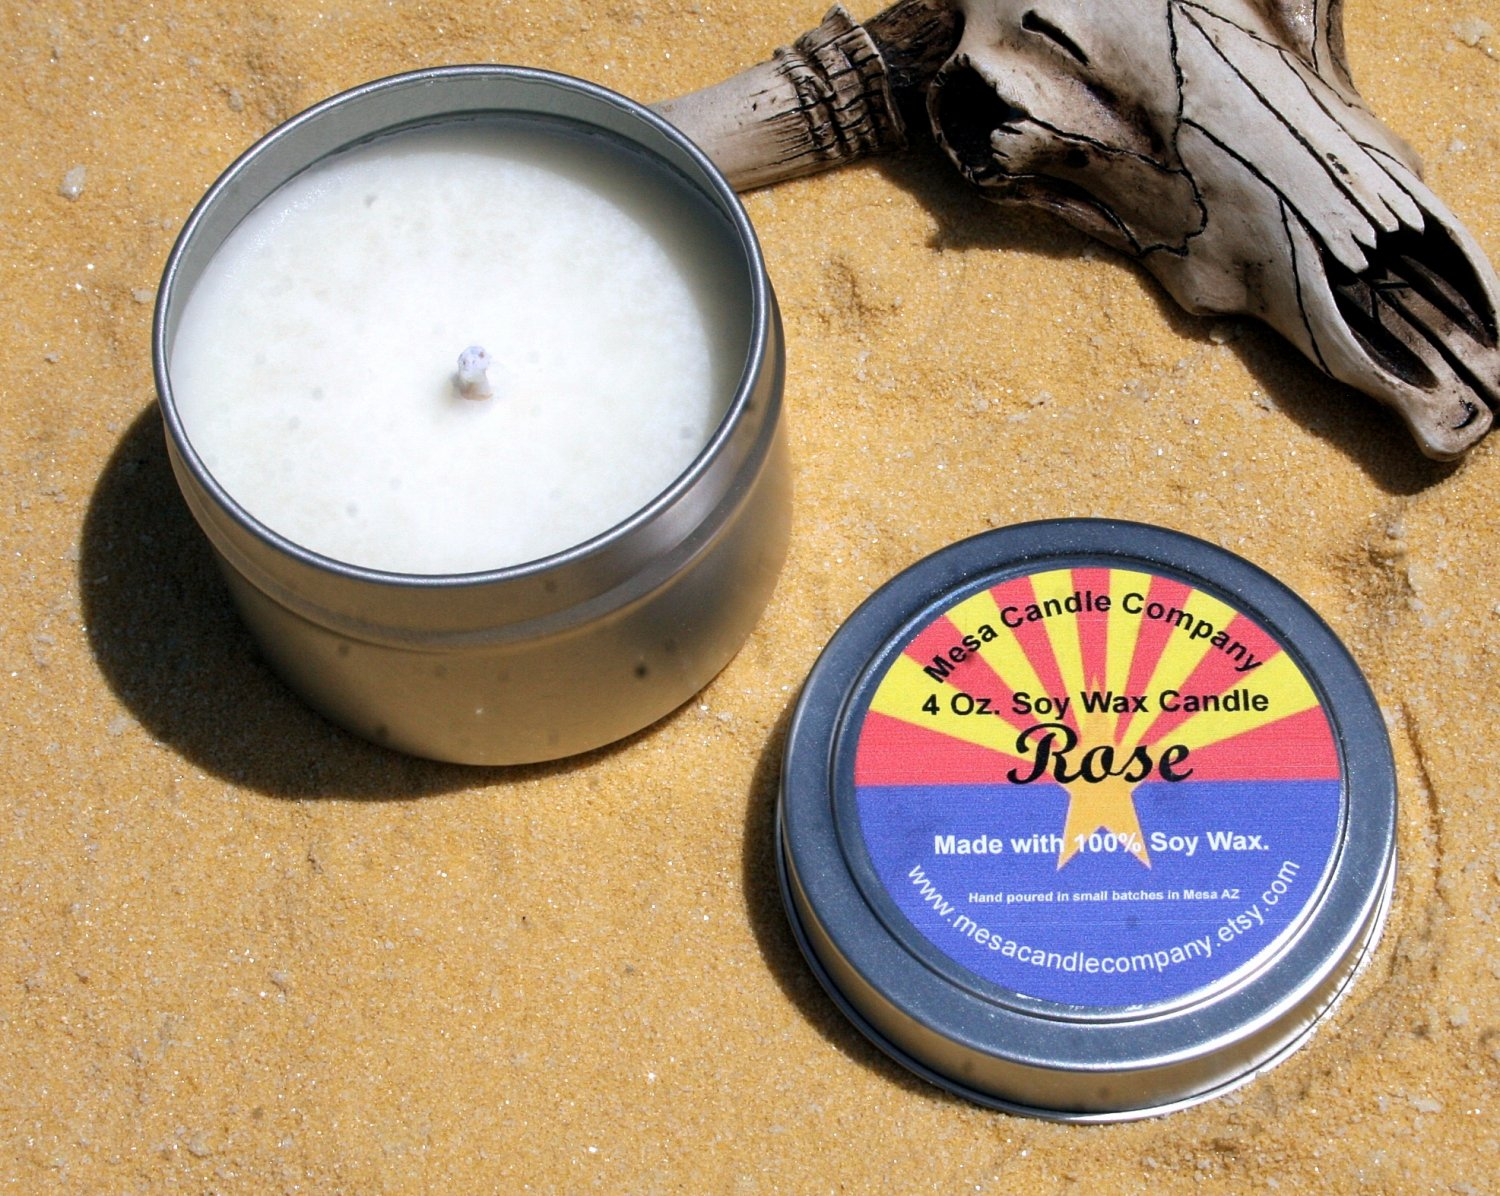 Rose Scented Soy Candle 4 Oz.